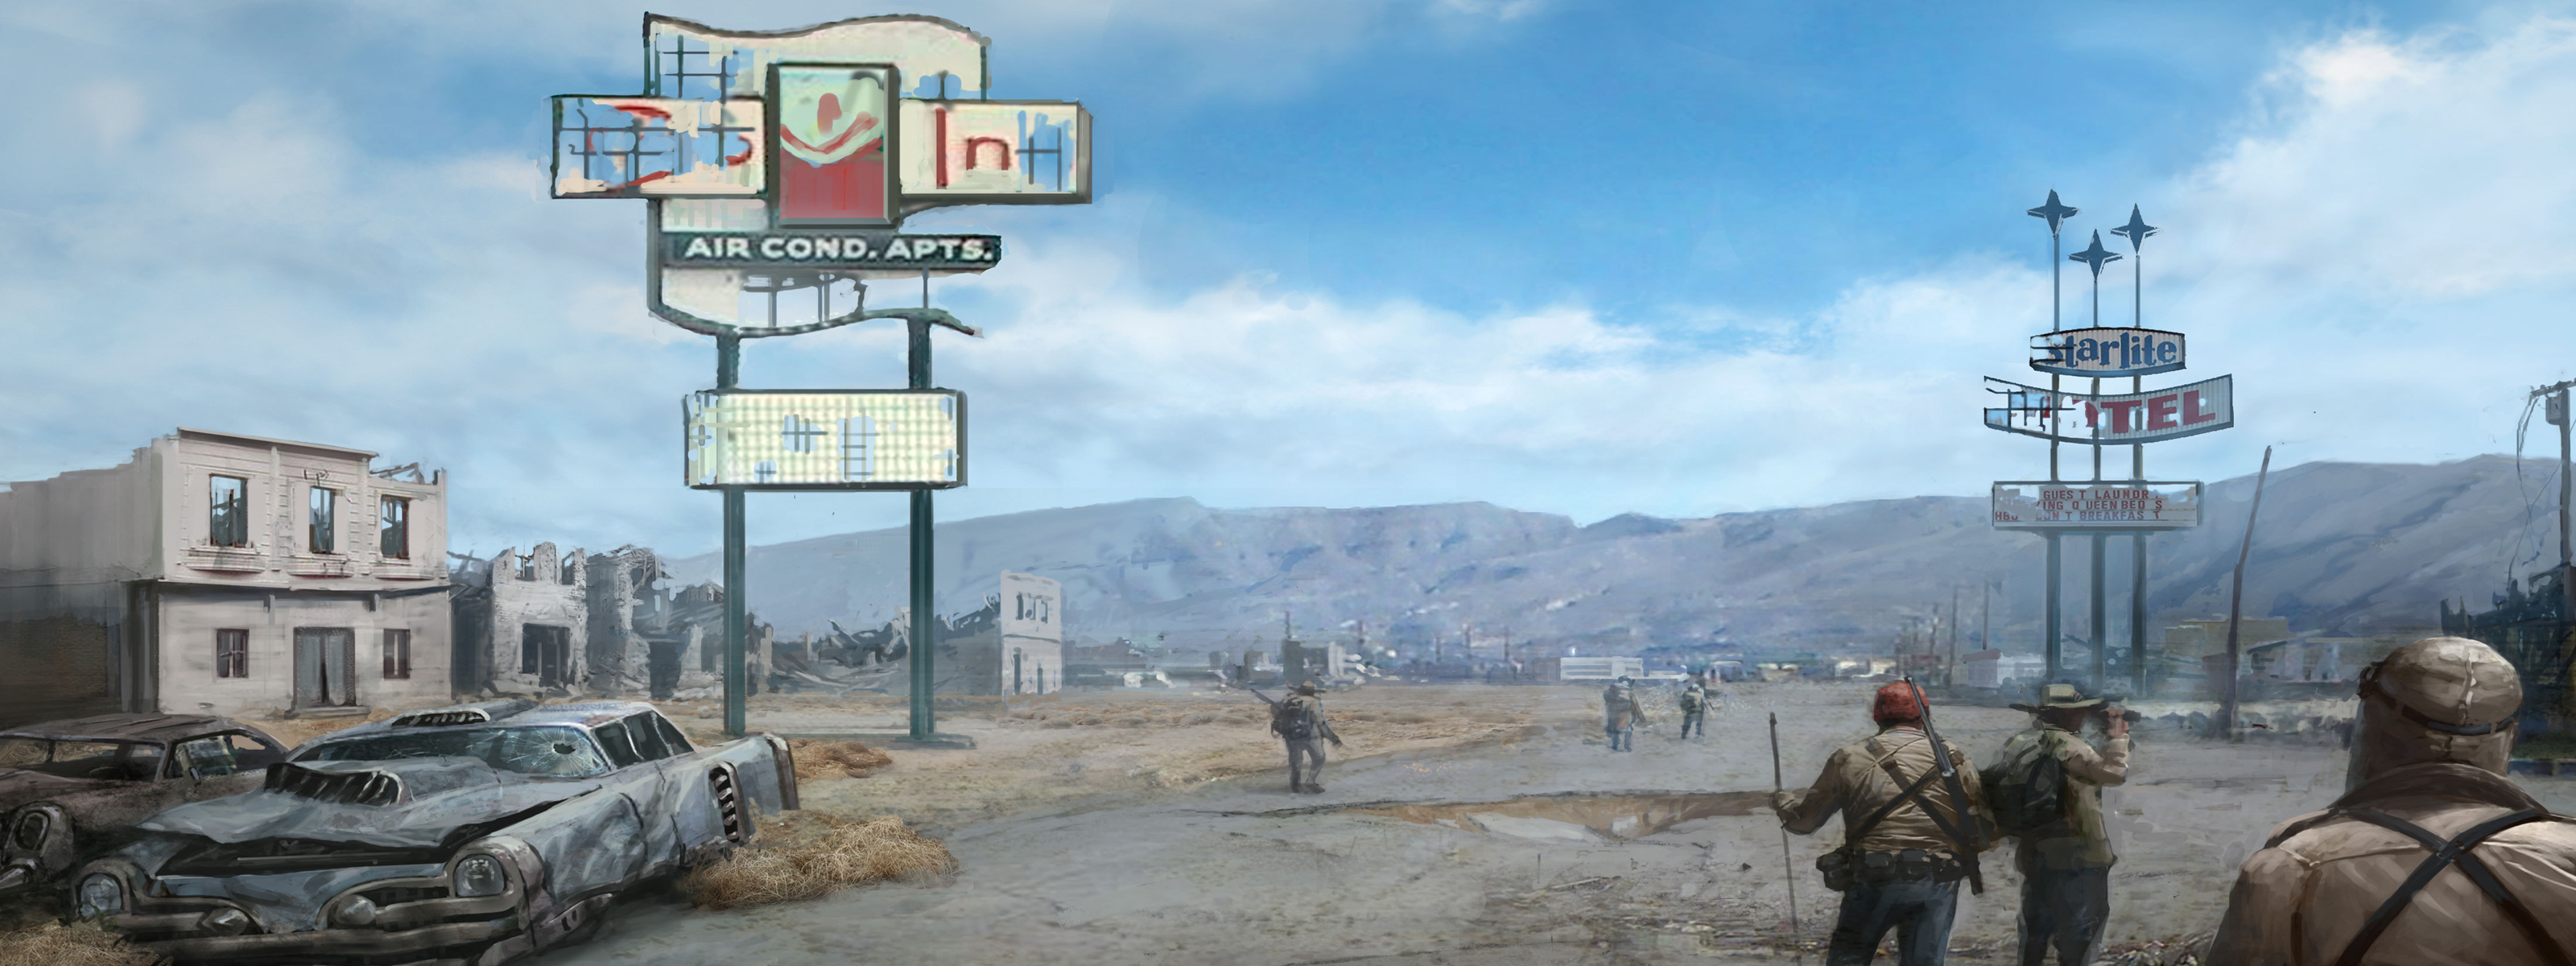 fallout dual screen wallpaper 2 big Dual screen wallpaper video games